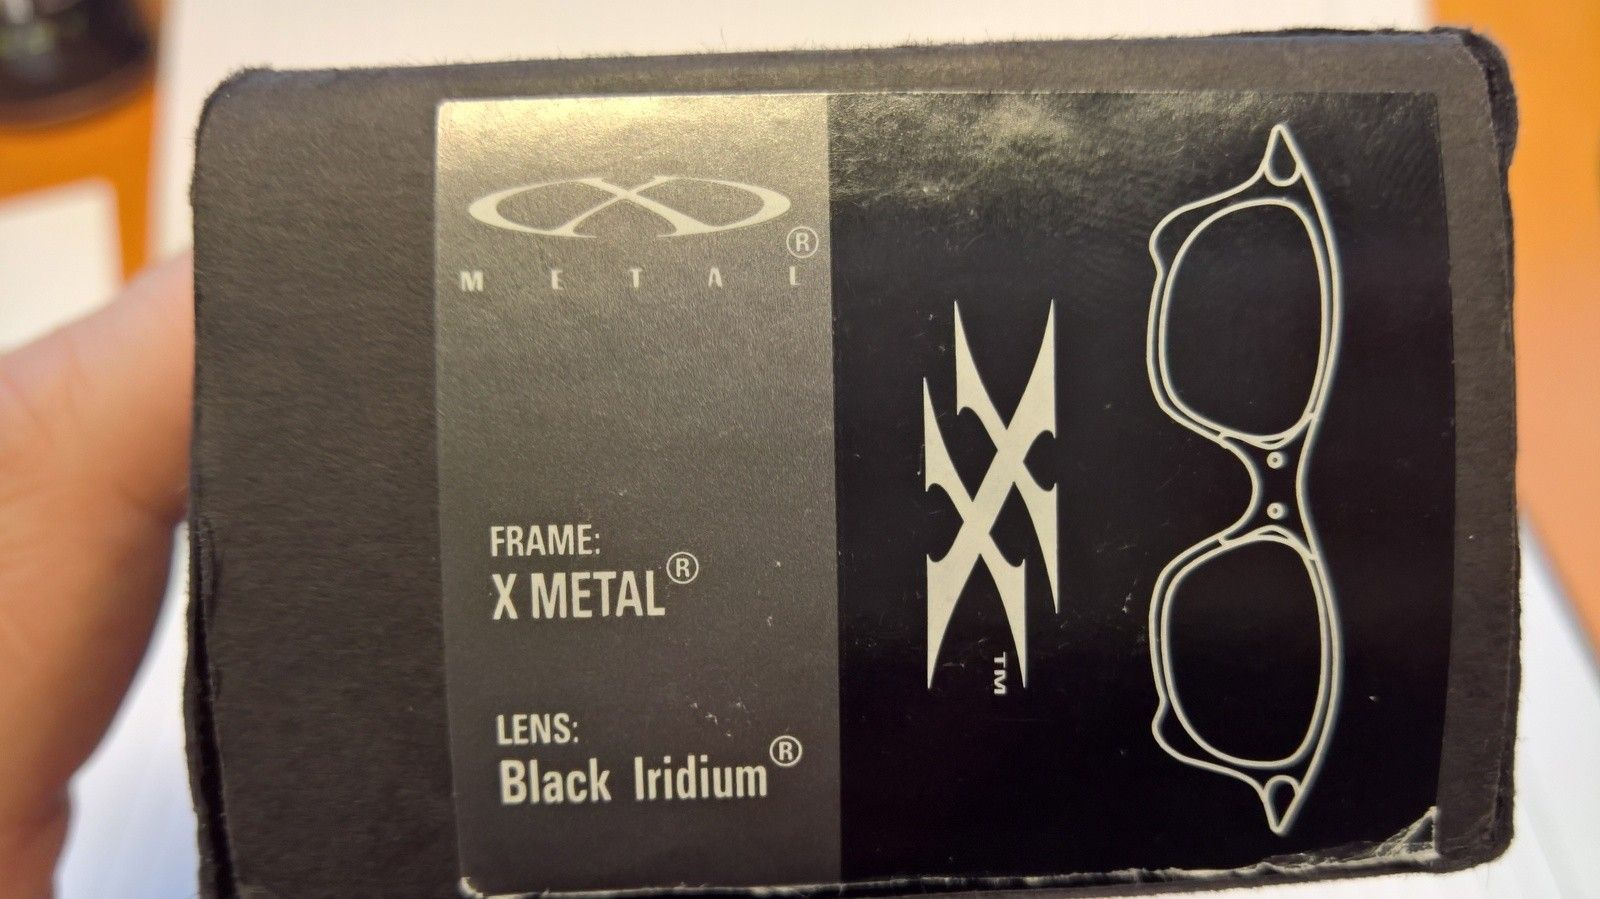 X Metal XX Black Iridium NON Serialized in box with old coin 450,- USD - WP_20160108_10_32_47_Rich.jpg